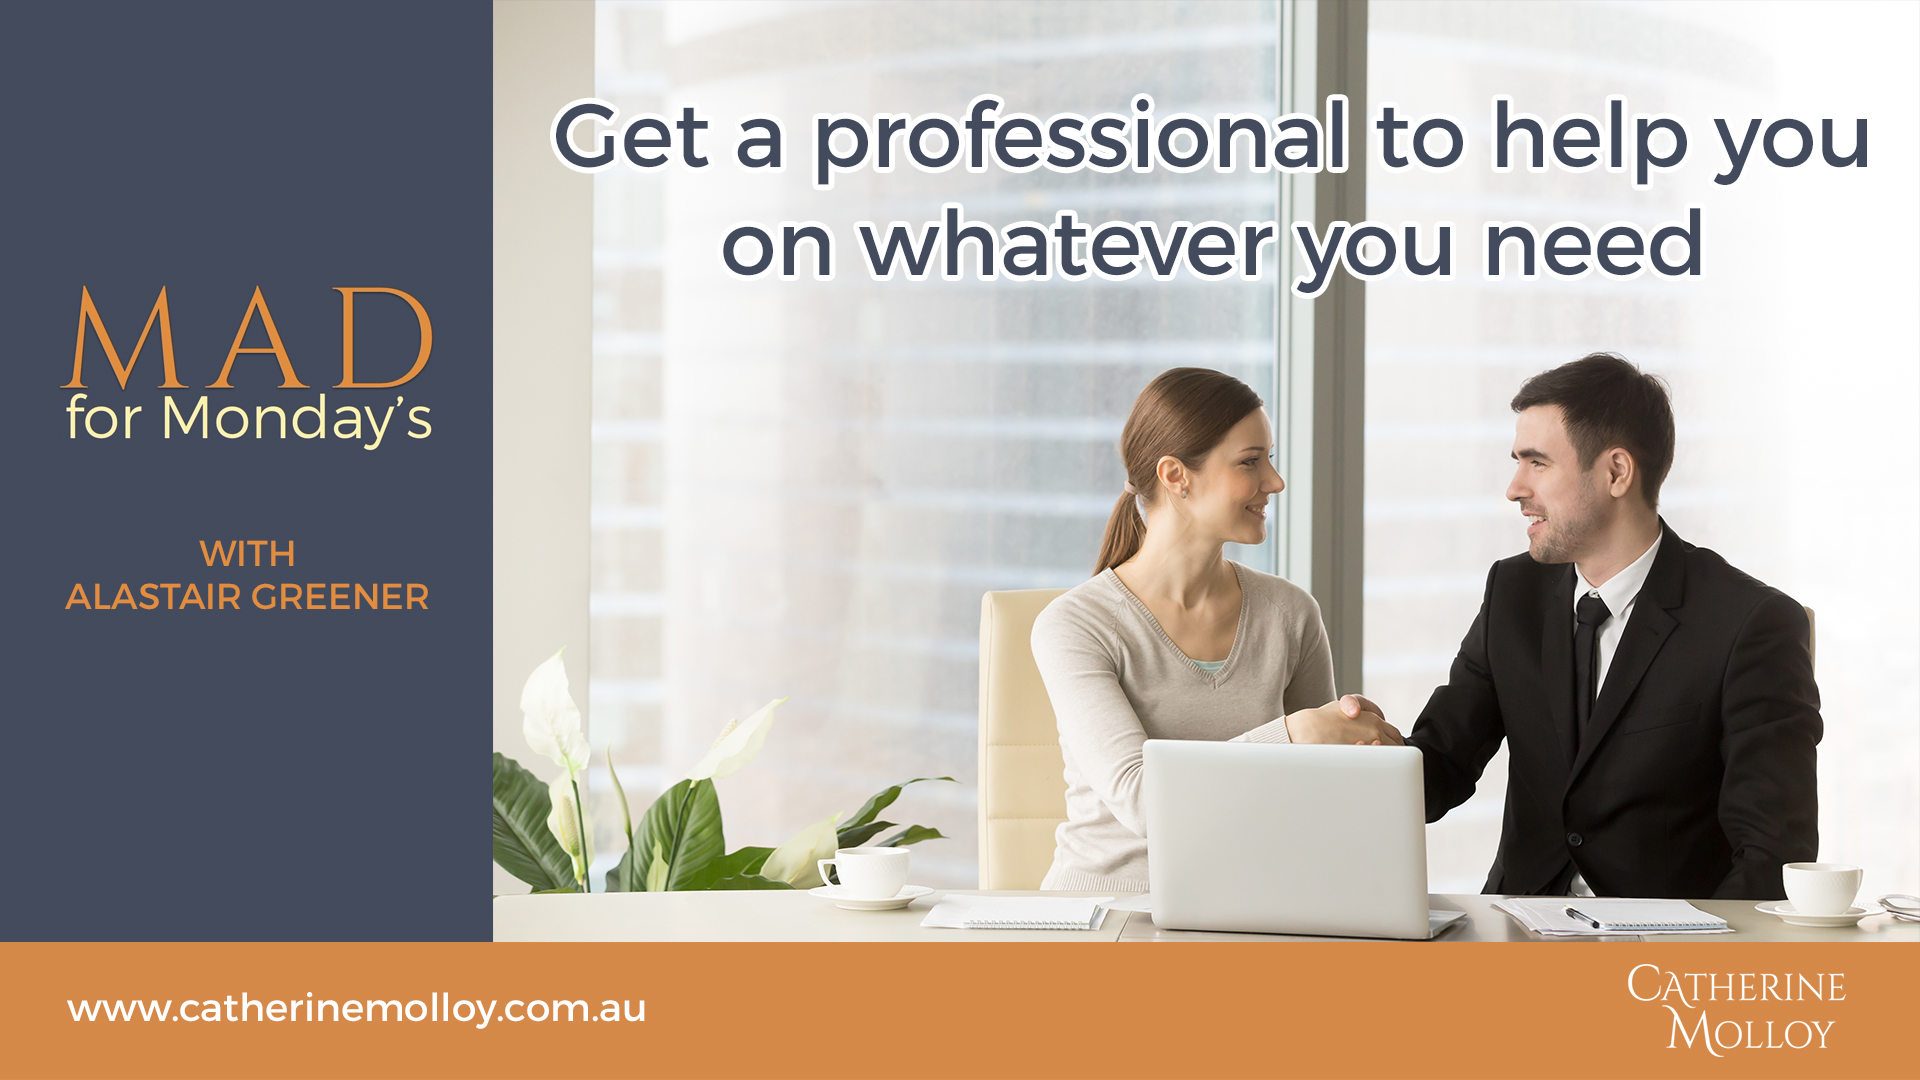 MAD for Monday's – Get a professional to help you on whatever you need